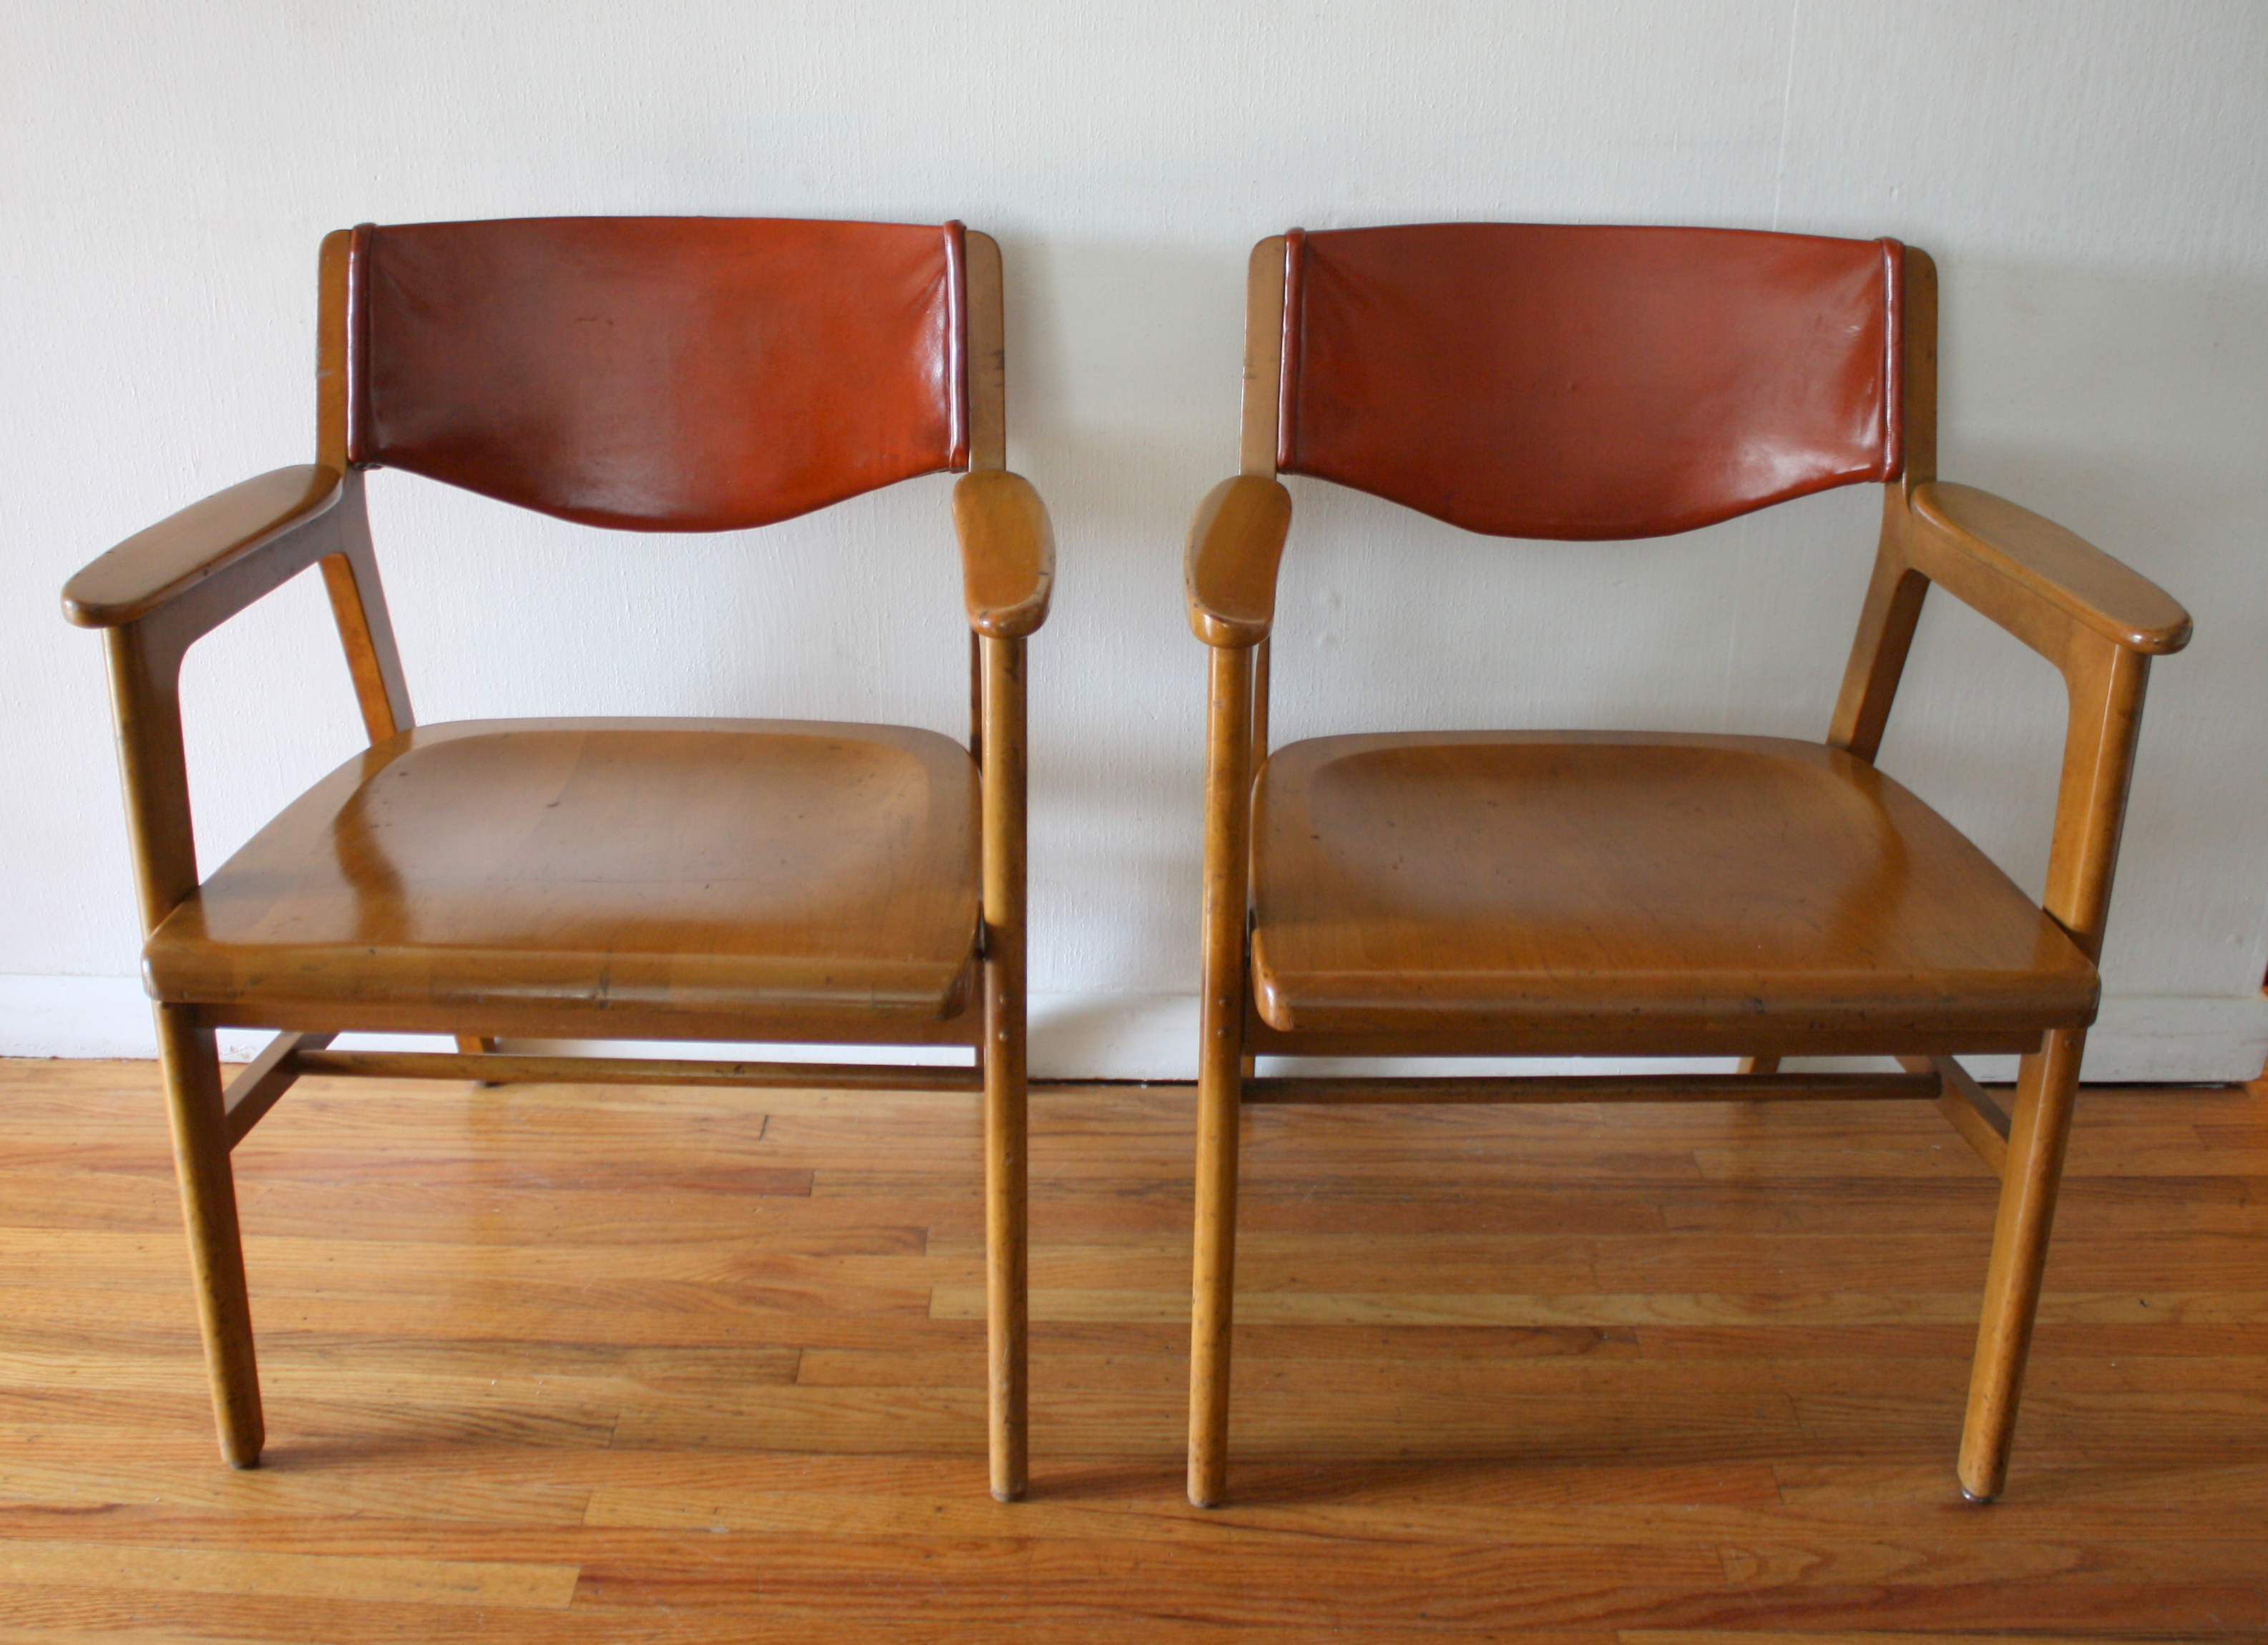 Astounding Mid Century Modern Gunlocke Chairs Picked Vintage Gmtry Best Dining Table And Chair Ideas Images Gmtryco